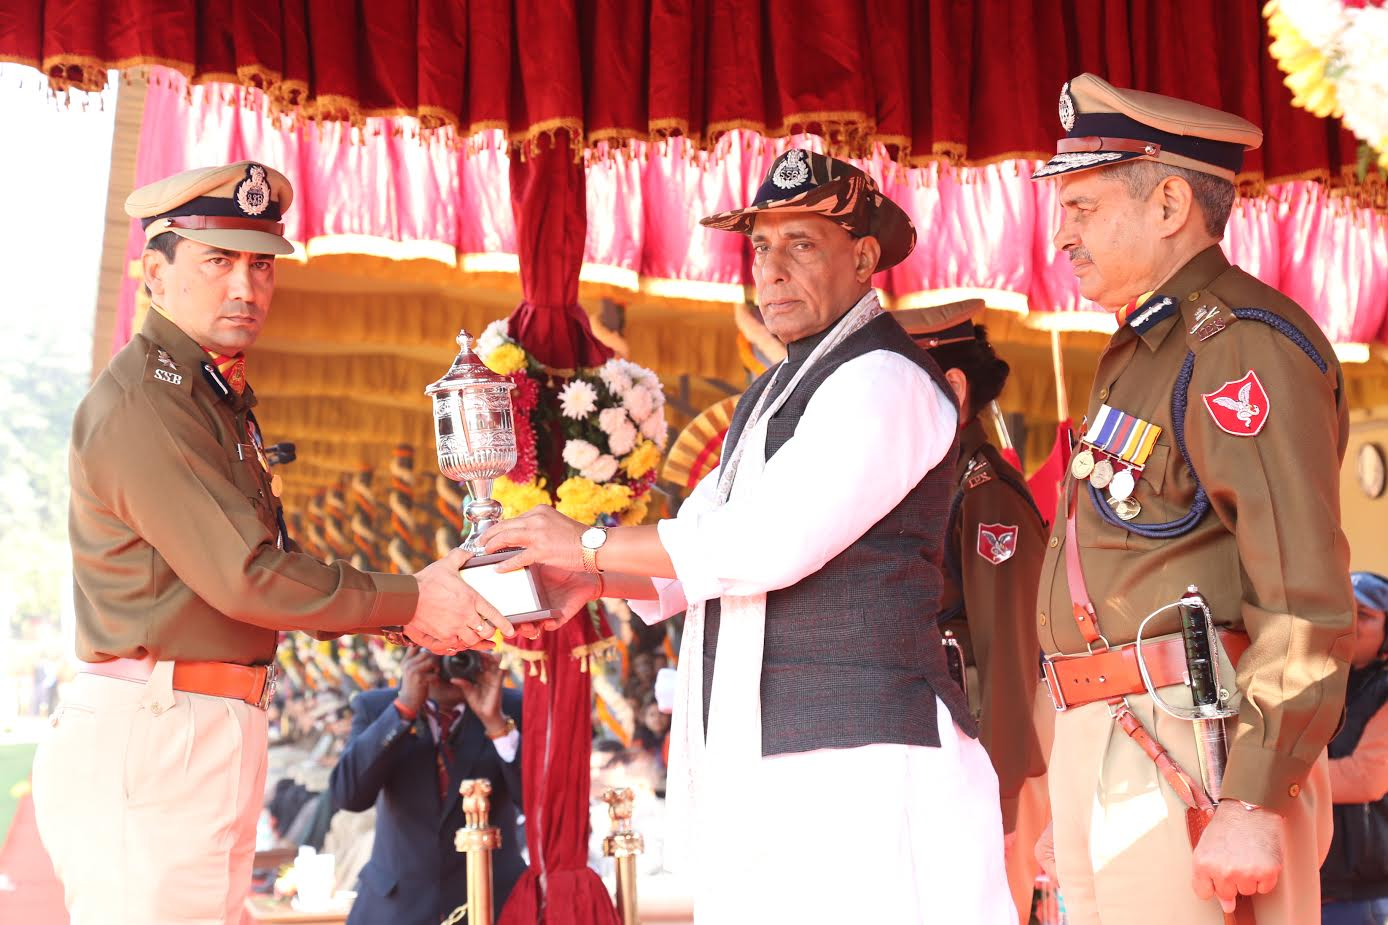 shri-rajnath-singh-giving-medals-to-ssb-jawans-3